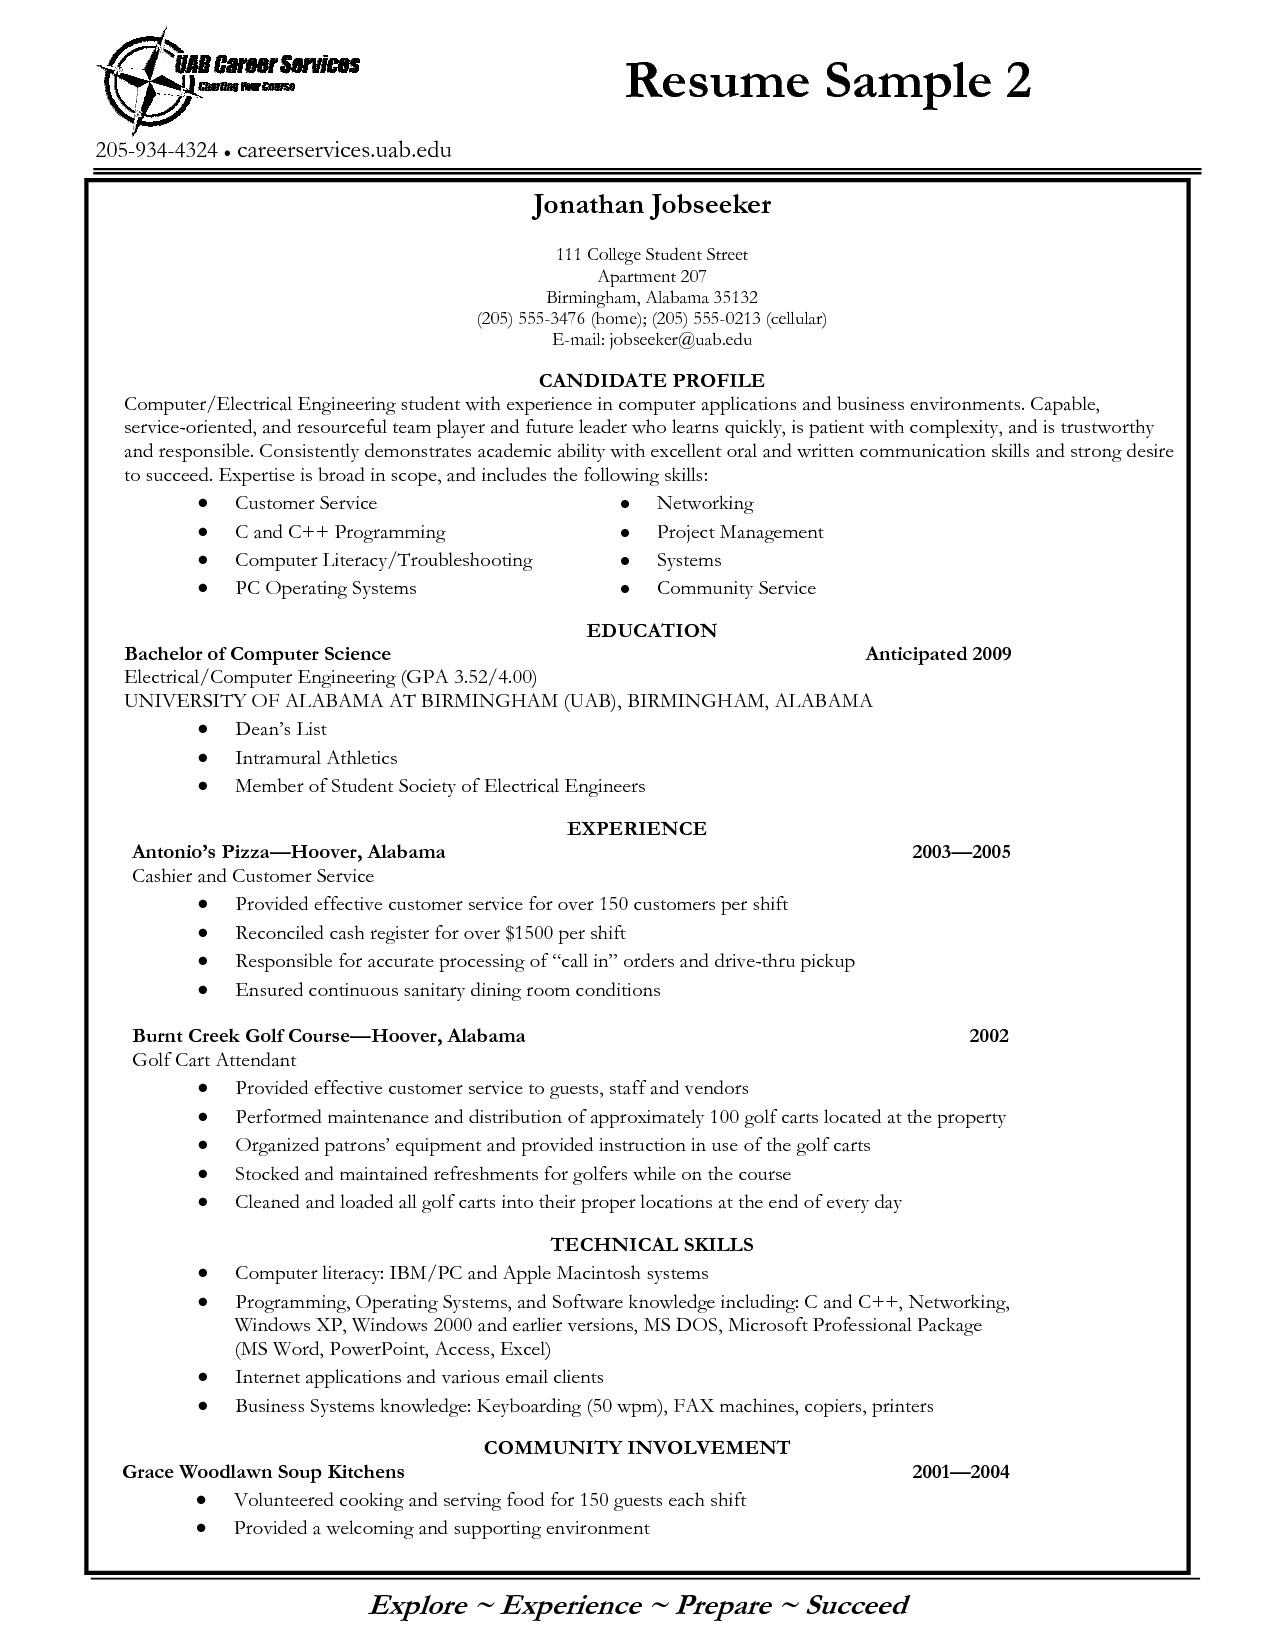 High School Resume Template Microsoft Word Tags College Graduate Resume No Experience College Graduate Resume